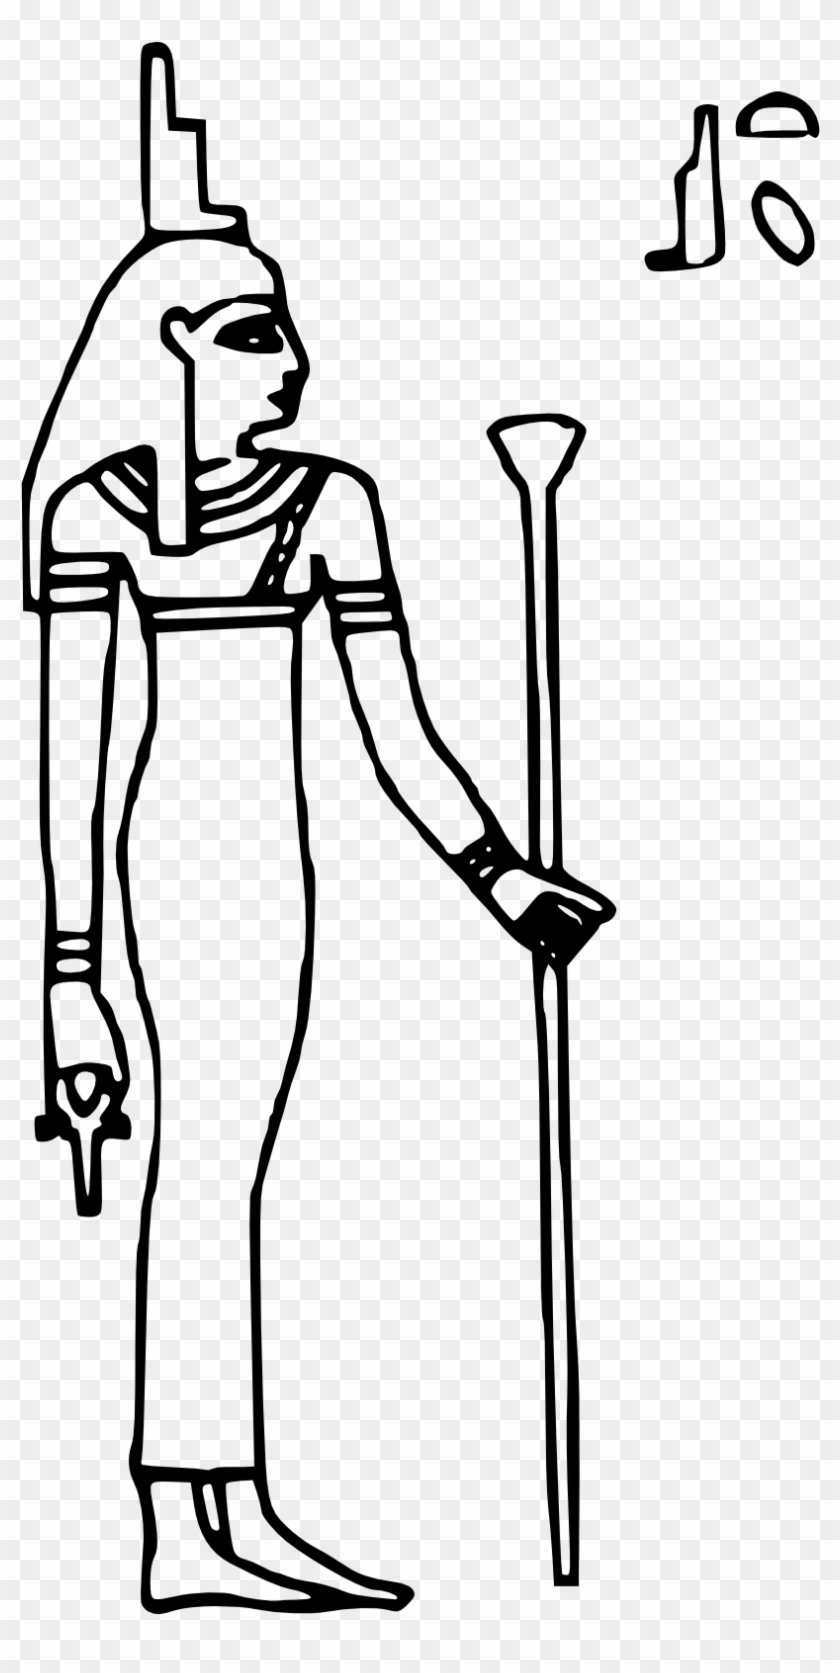 Ancient Egyptian Deities Isis Coloring Book Goddess - Isis Egyptian Goddess Outline #1030759